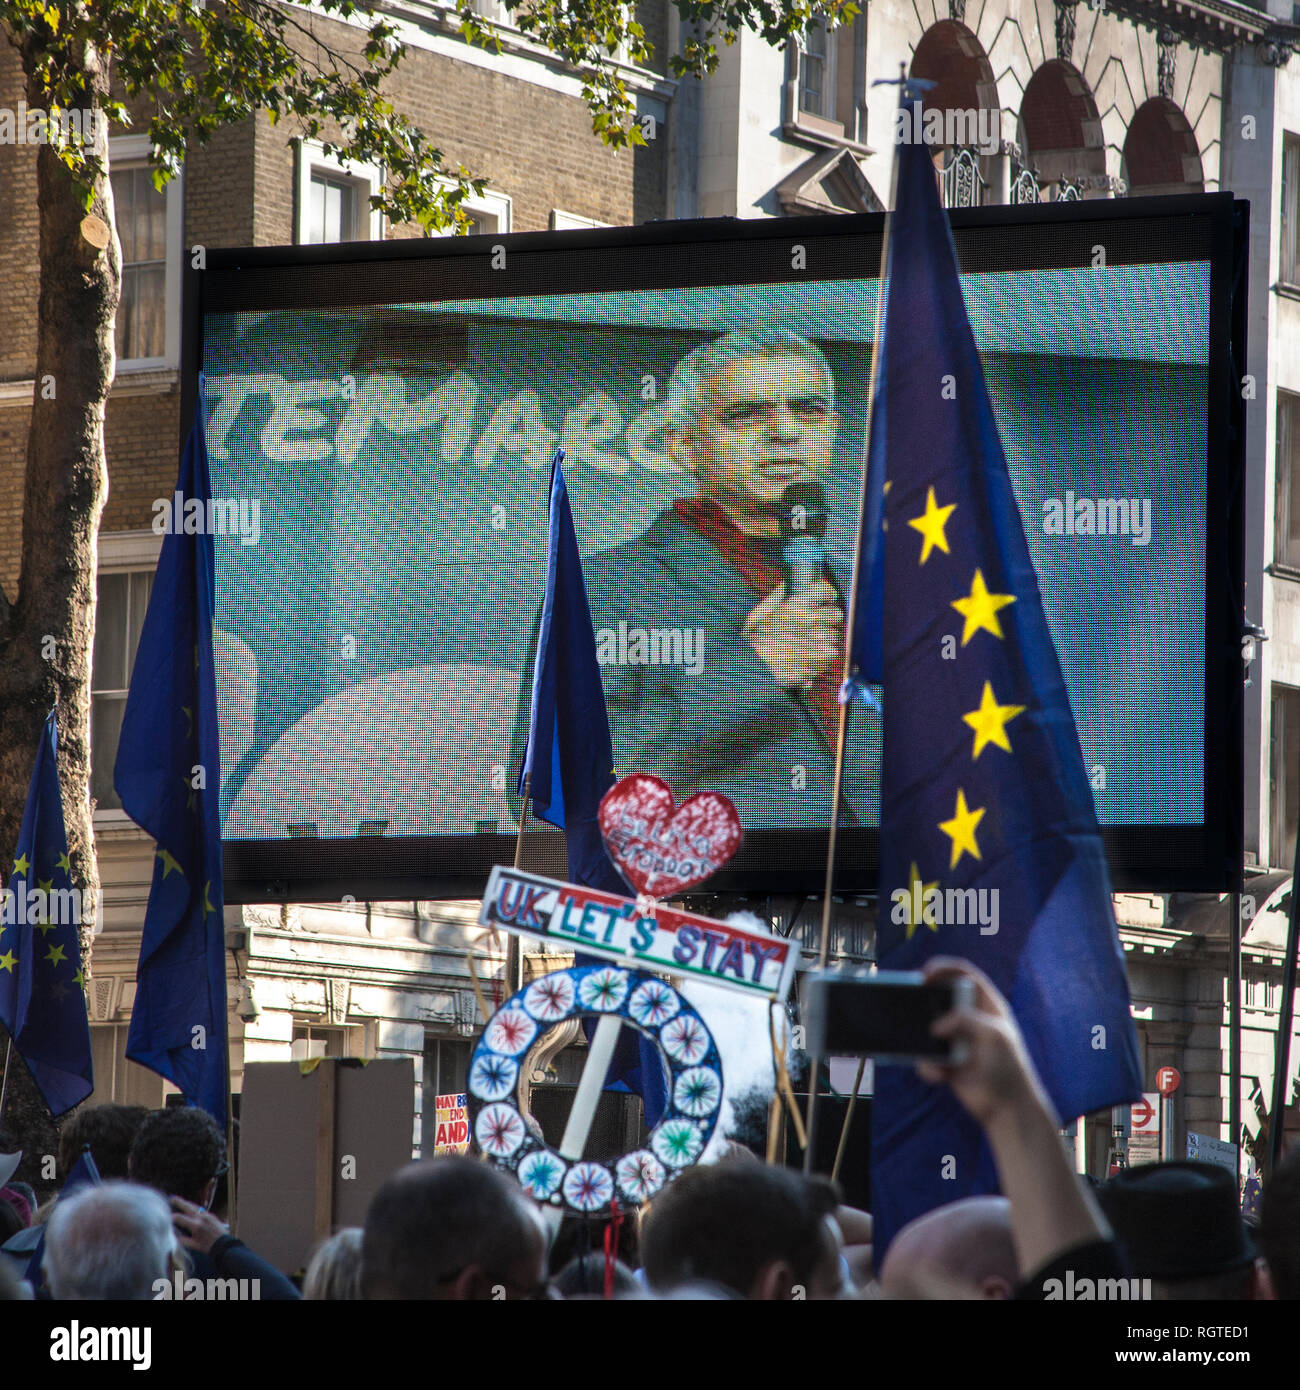 Sadiq Khan on tv screen at people's vote march London - Stock Image